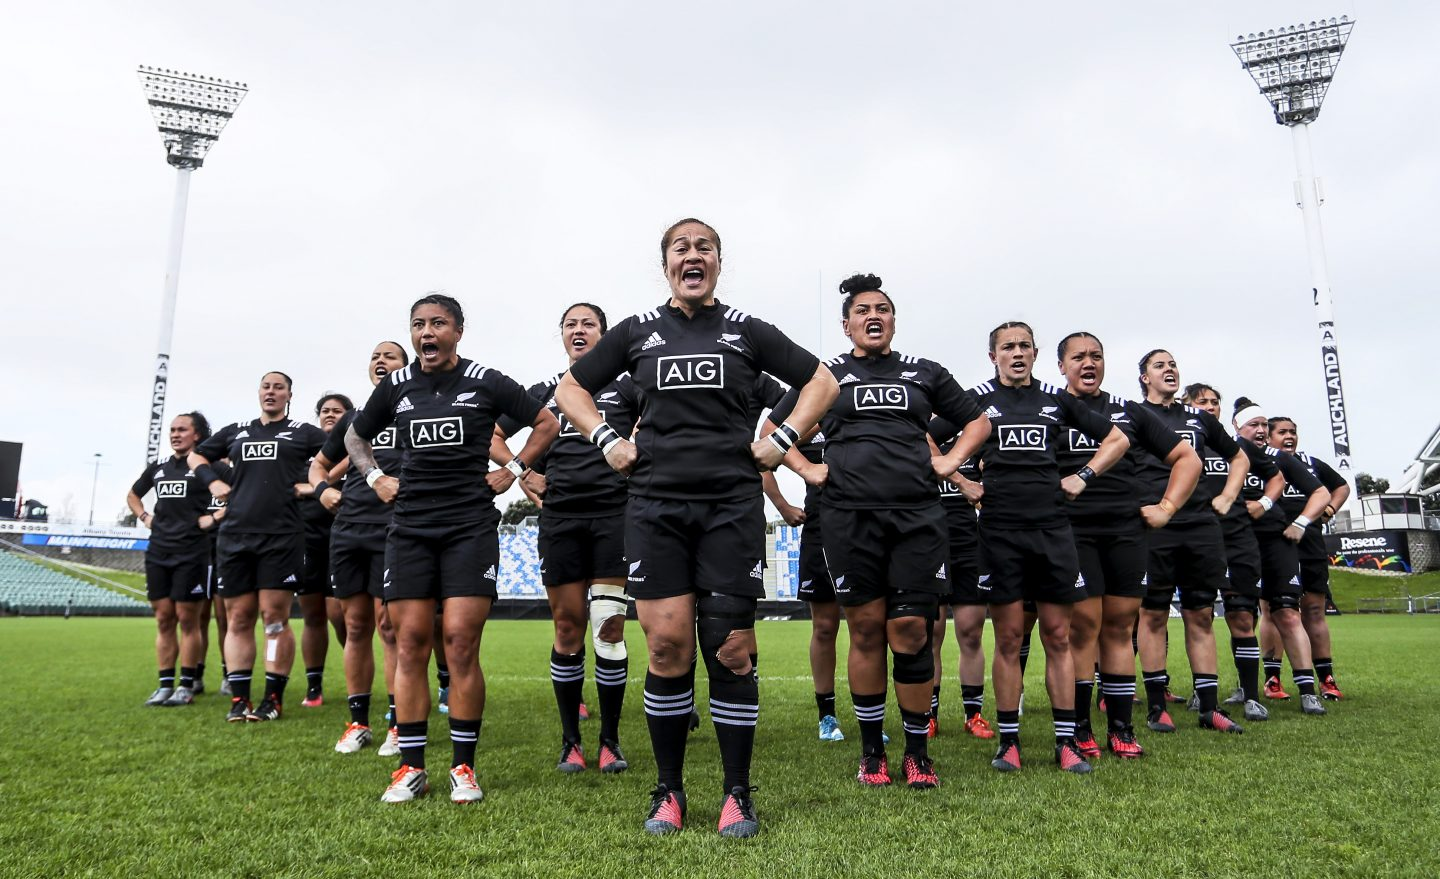 The Black Ferns during the haka during the International Test match between the New Zealand Black Ferns and Australia Wallaroos at North Harbour Stadium on October 26, 2016 in Auckland, New Zealand.